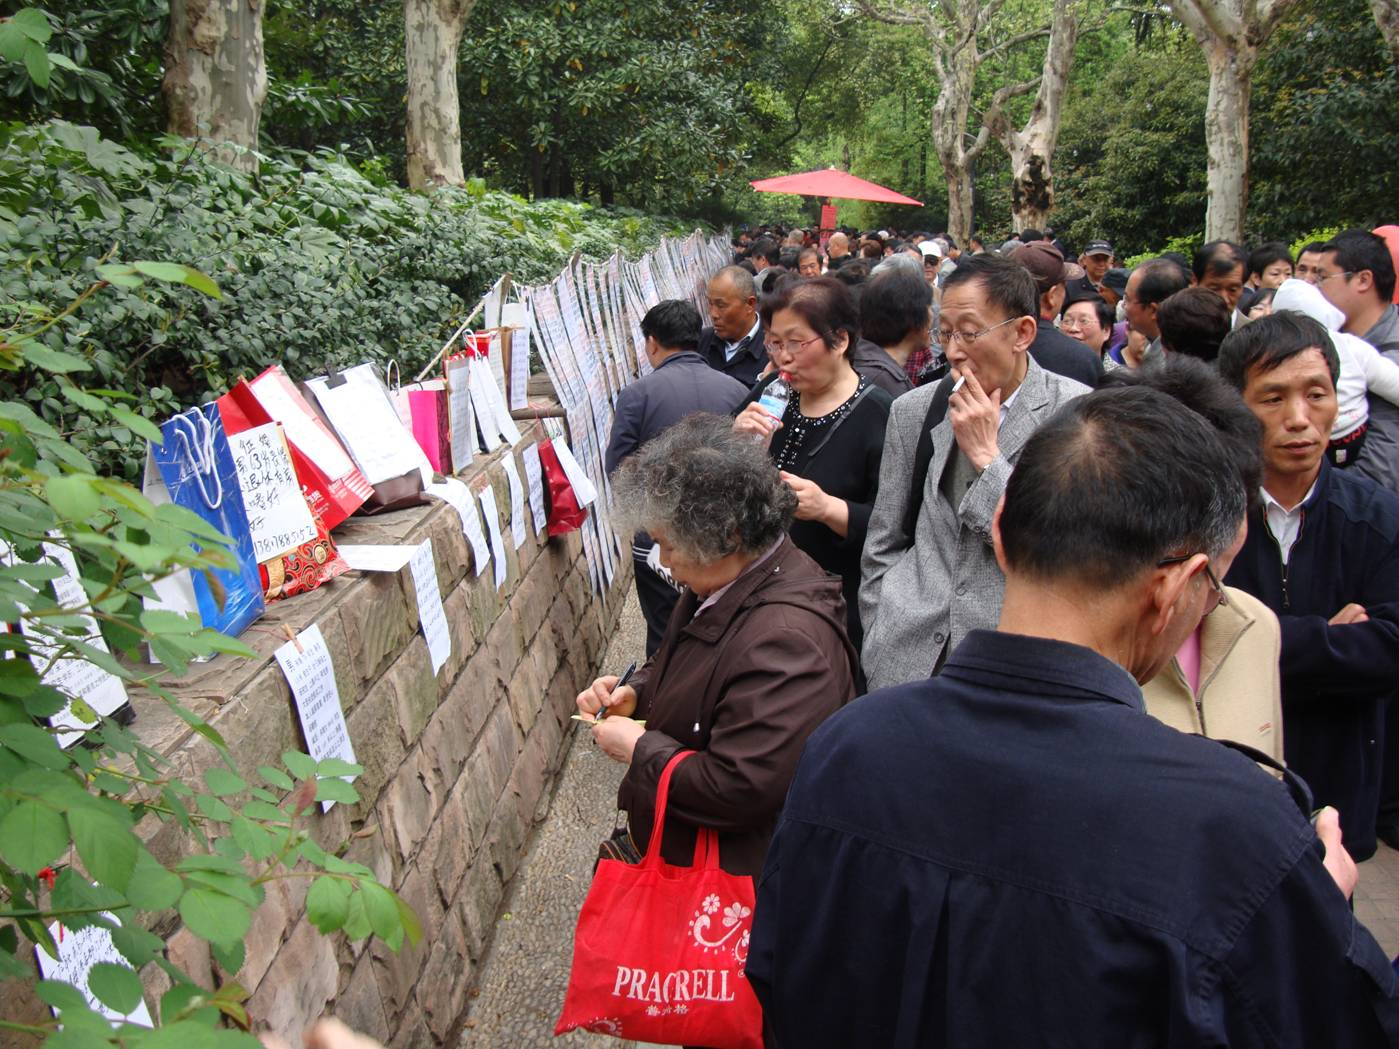 Picture:  People's Square Park, Shanghai.  Parents and Grandparents search the posted ads  for wives and husbands for their children or grand children.